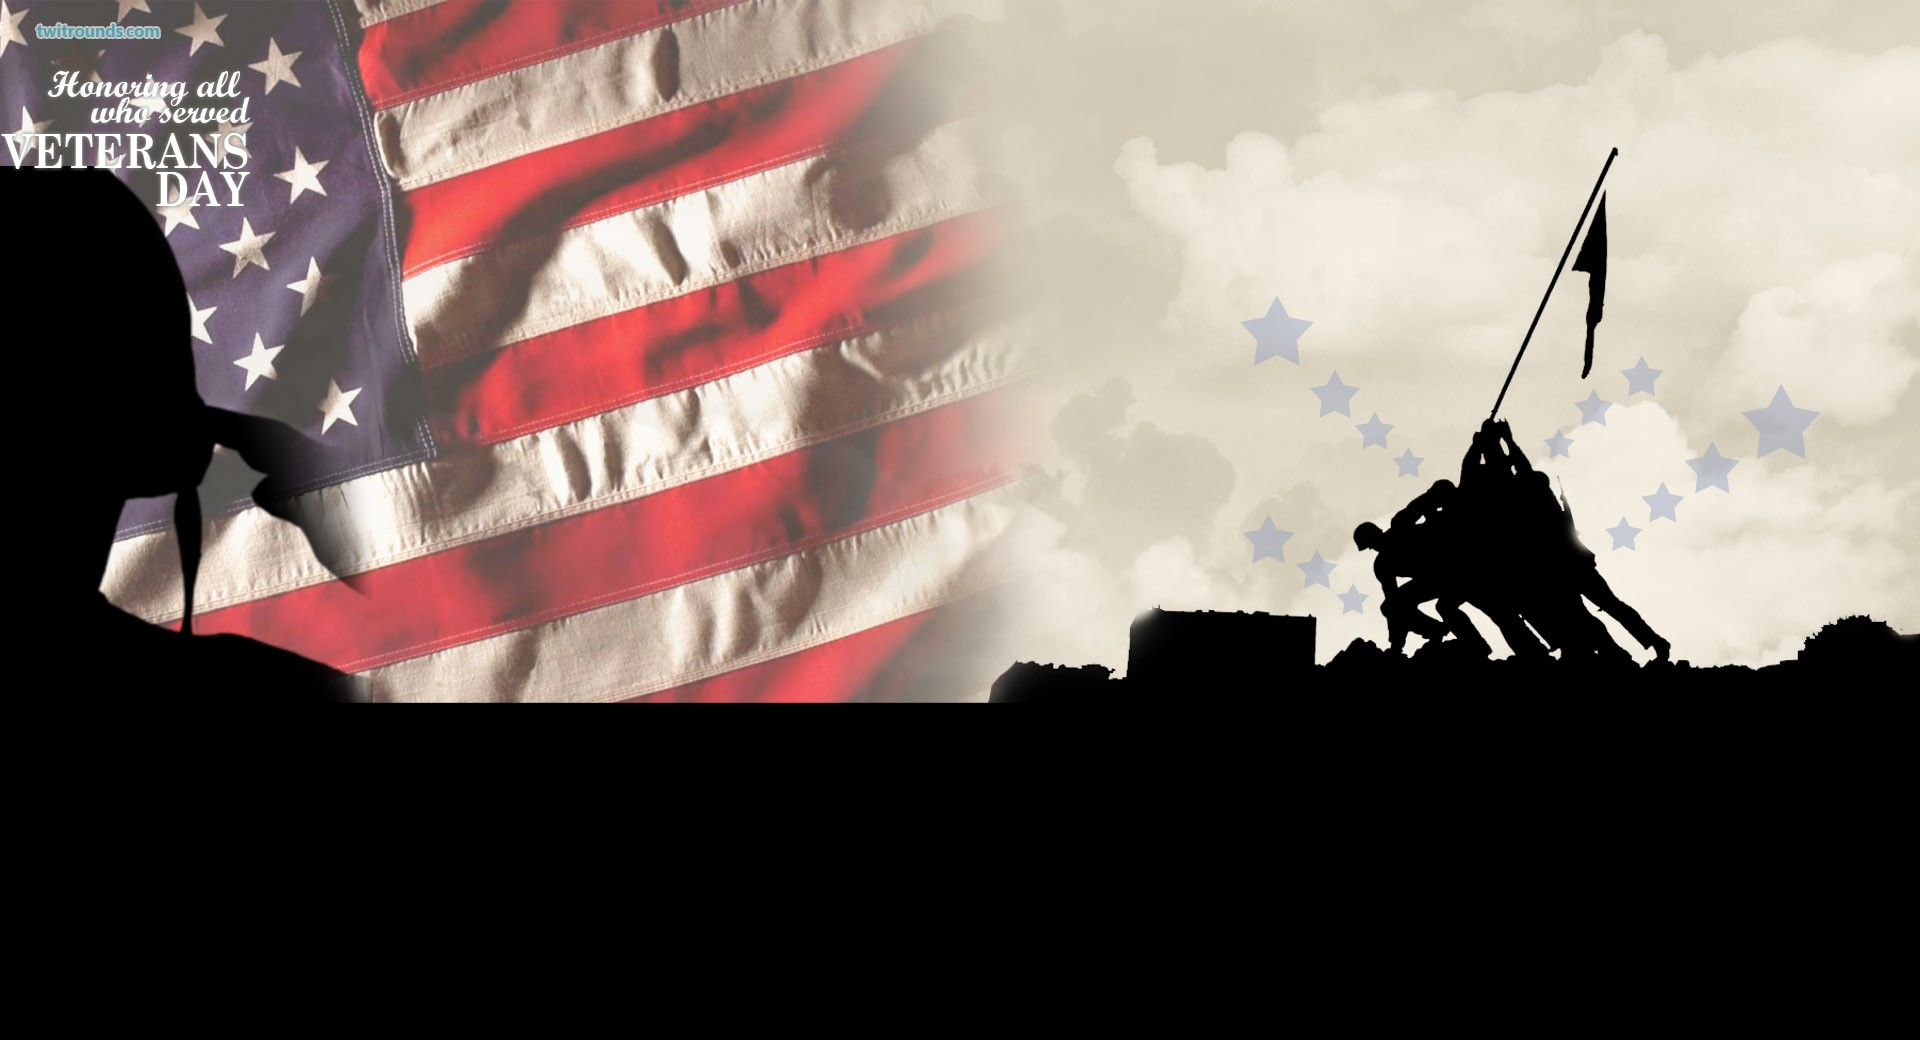 Veterans Day Wallpaper and Background Image 1920x1040 ID 1920x1040